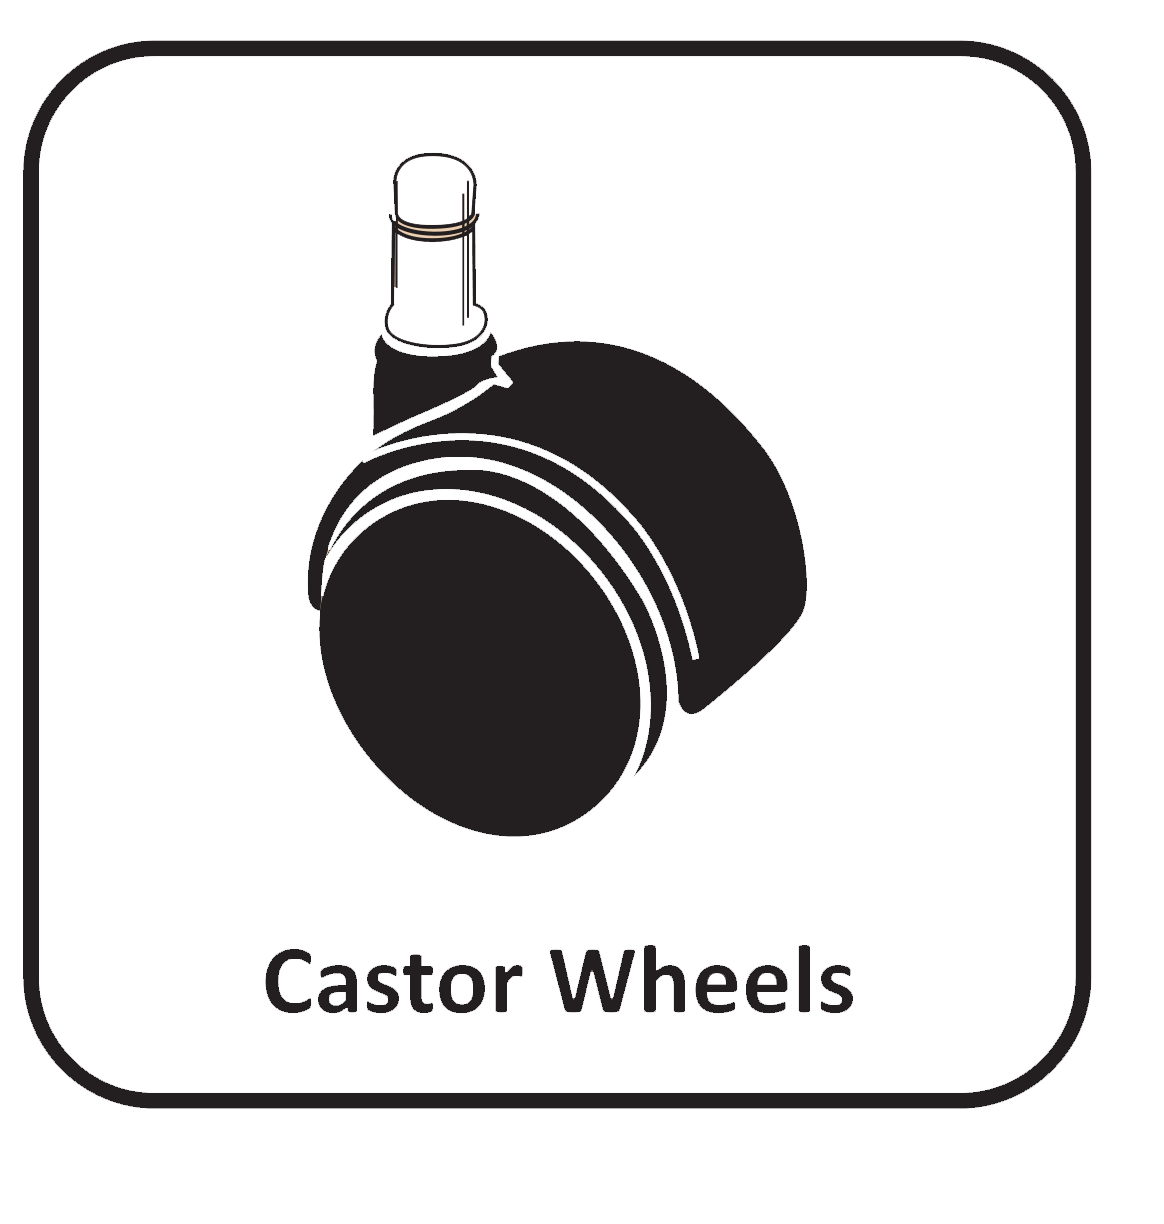 Castor wheels icon